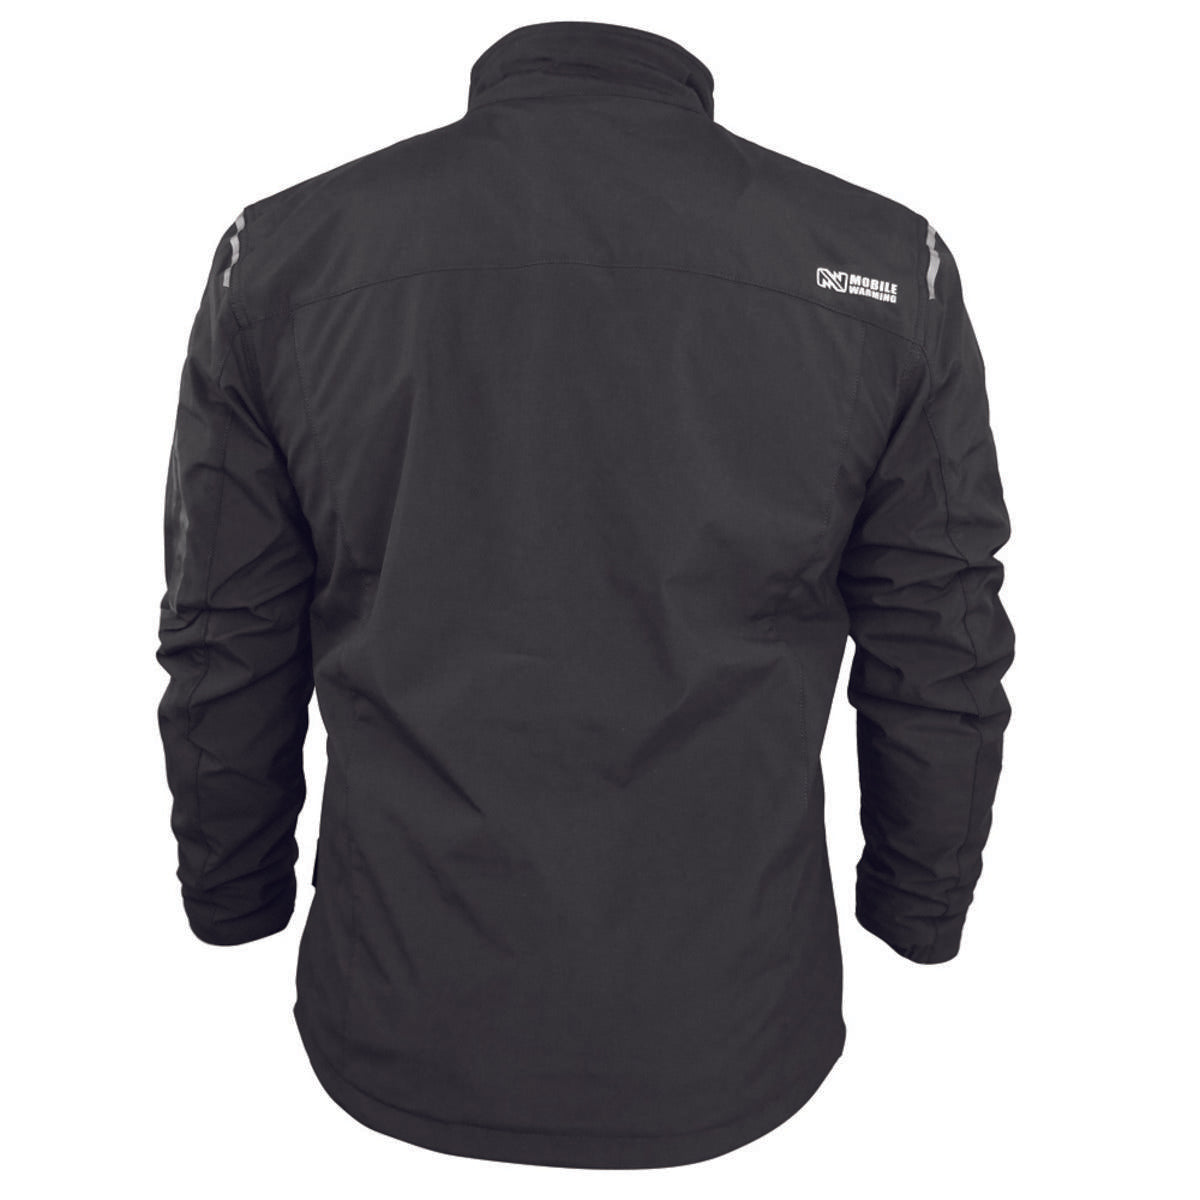 Mobile Warming 7.4V Men's Alpine Bluetooth Heated Jacket